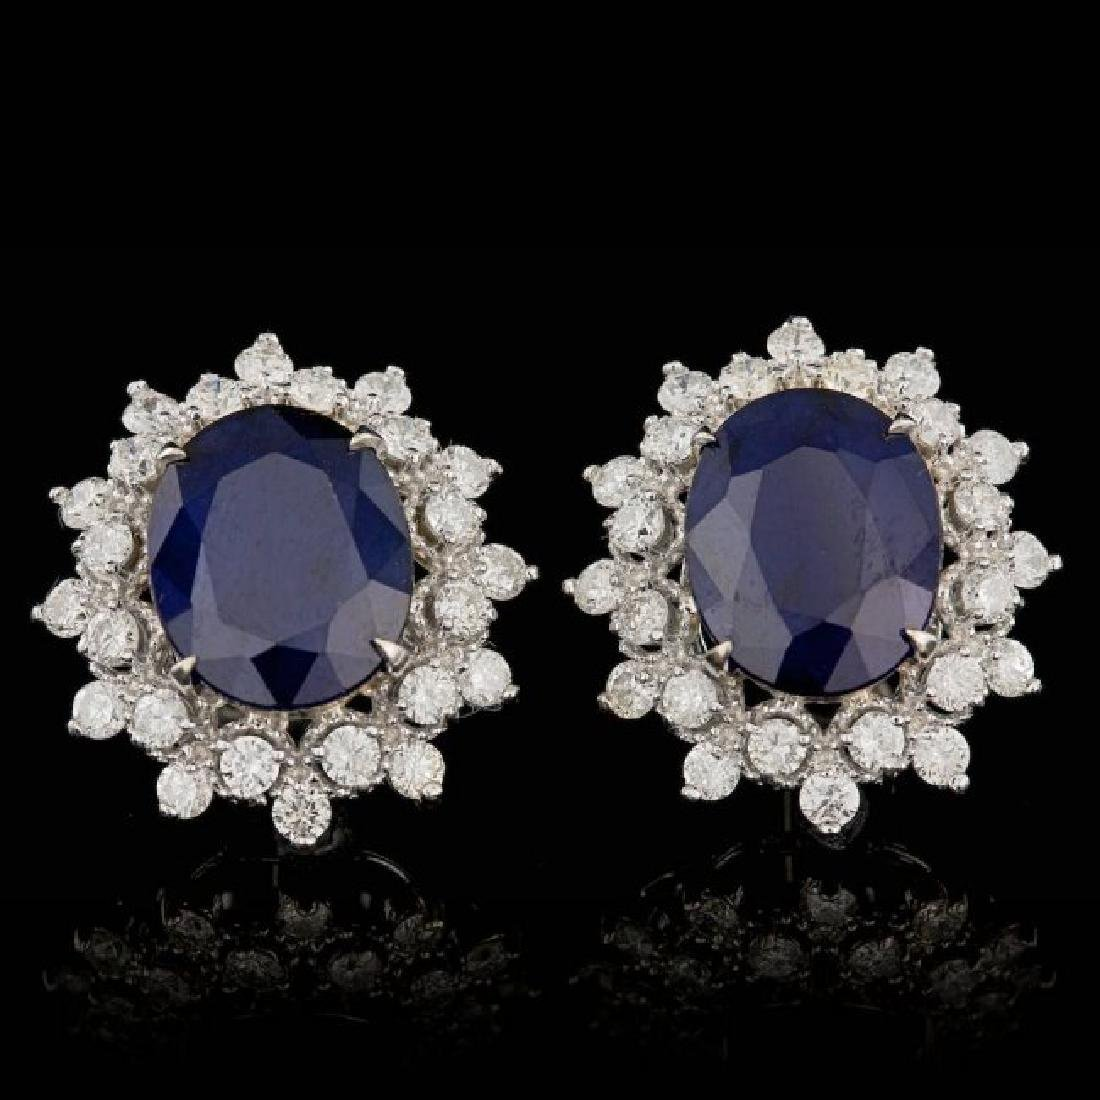 14k Gold 7.00ct Sapphire 1.30ct Diamond Earrings